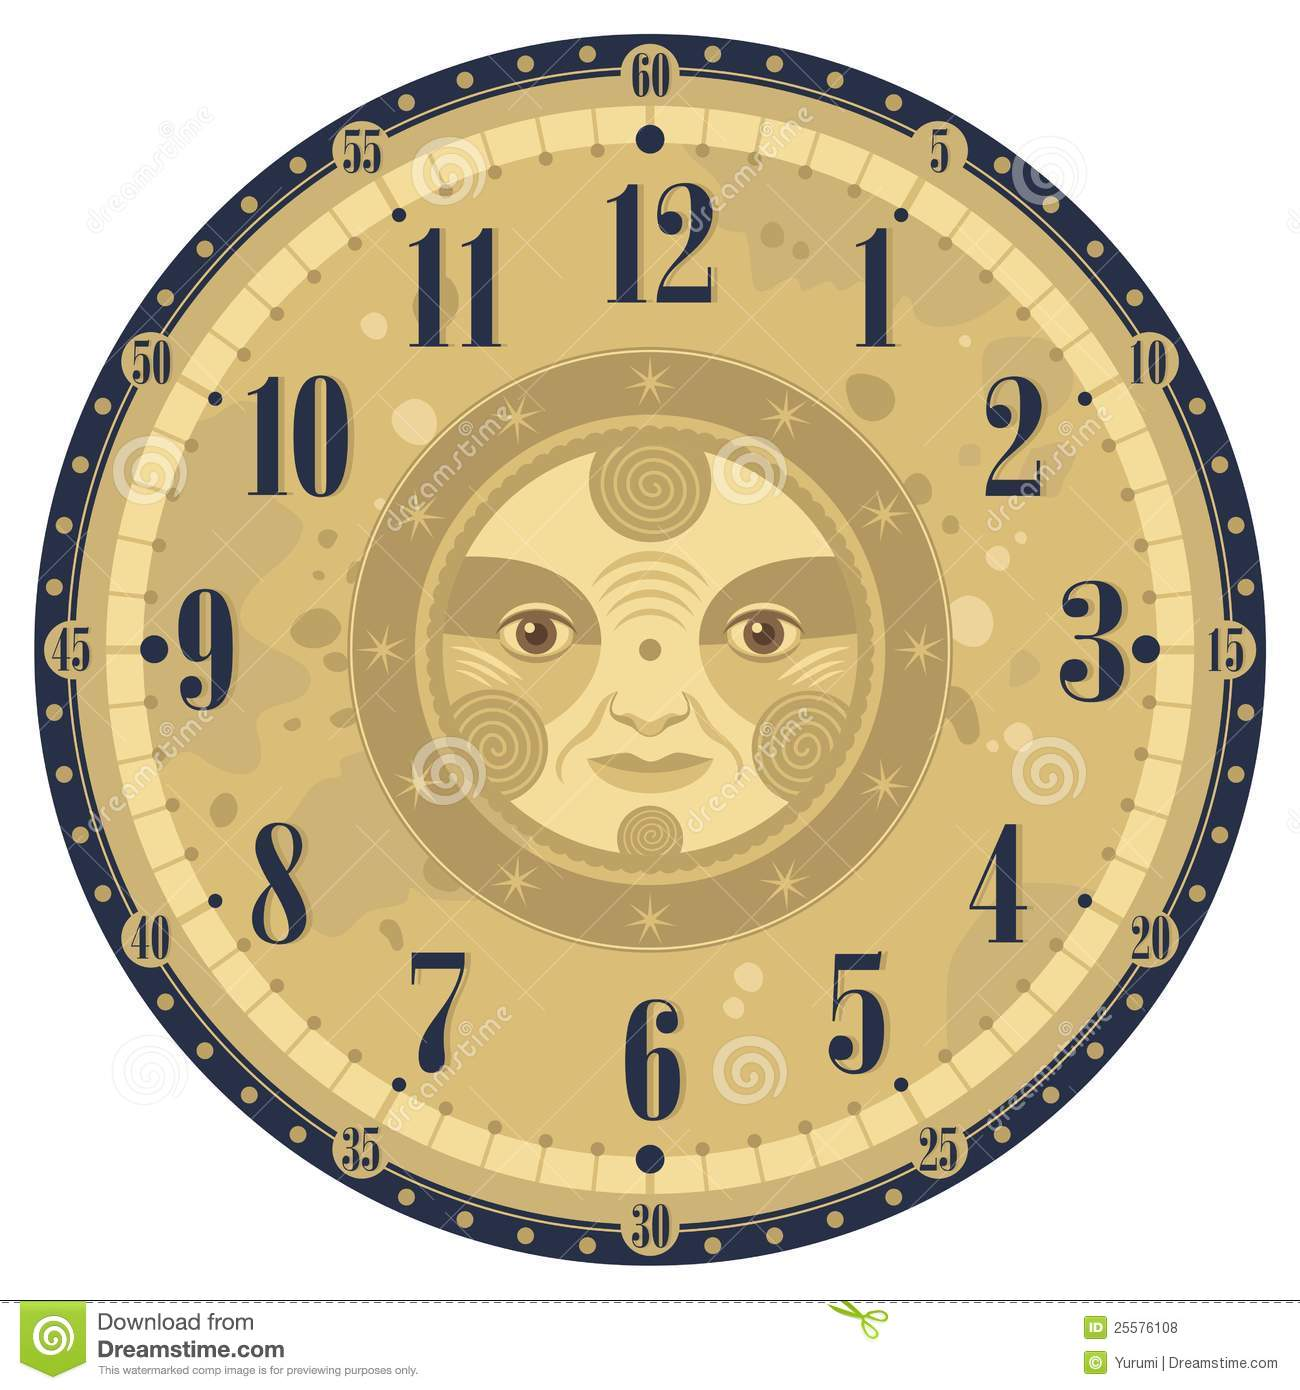 Vintage Clock Face Royalty Free Stock Photos Image 25576108